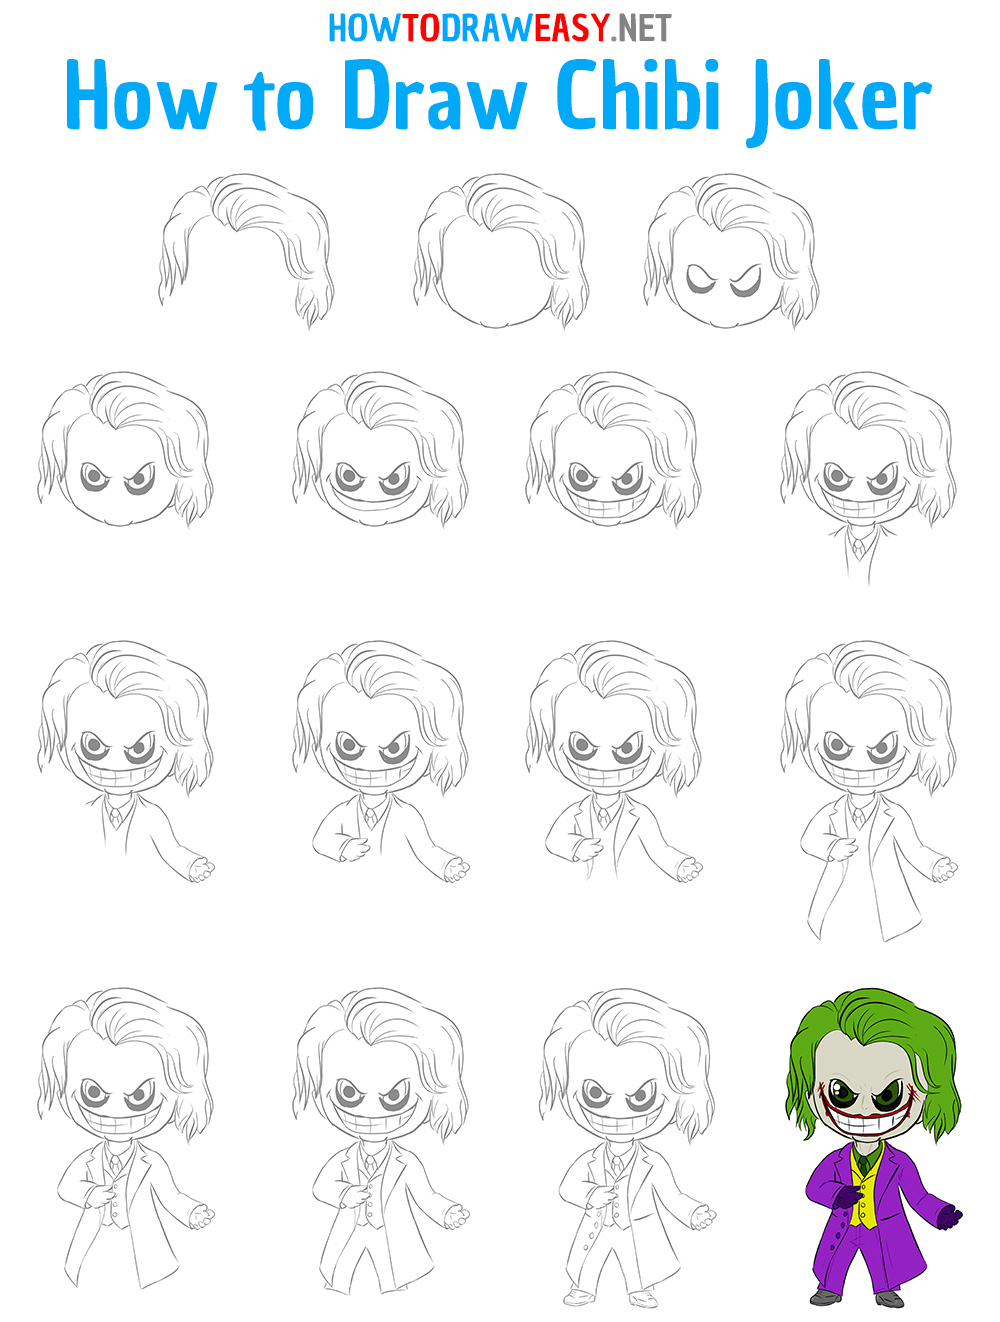 How to Draw Chibi Joker Step by Step